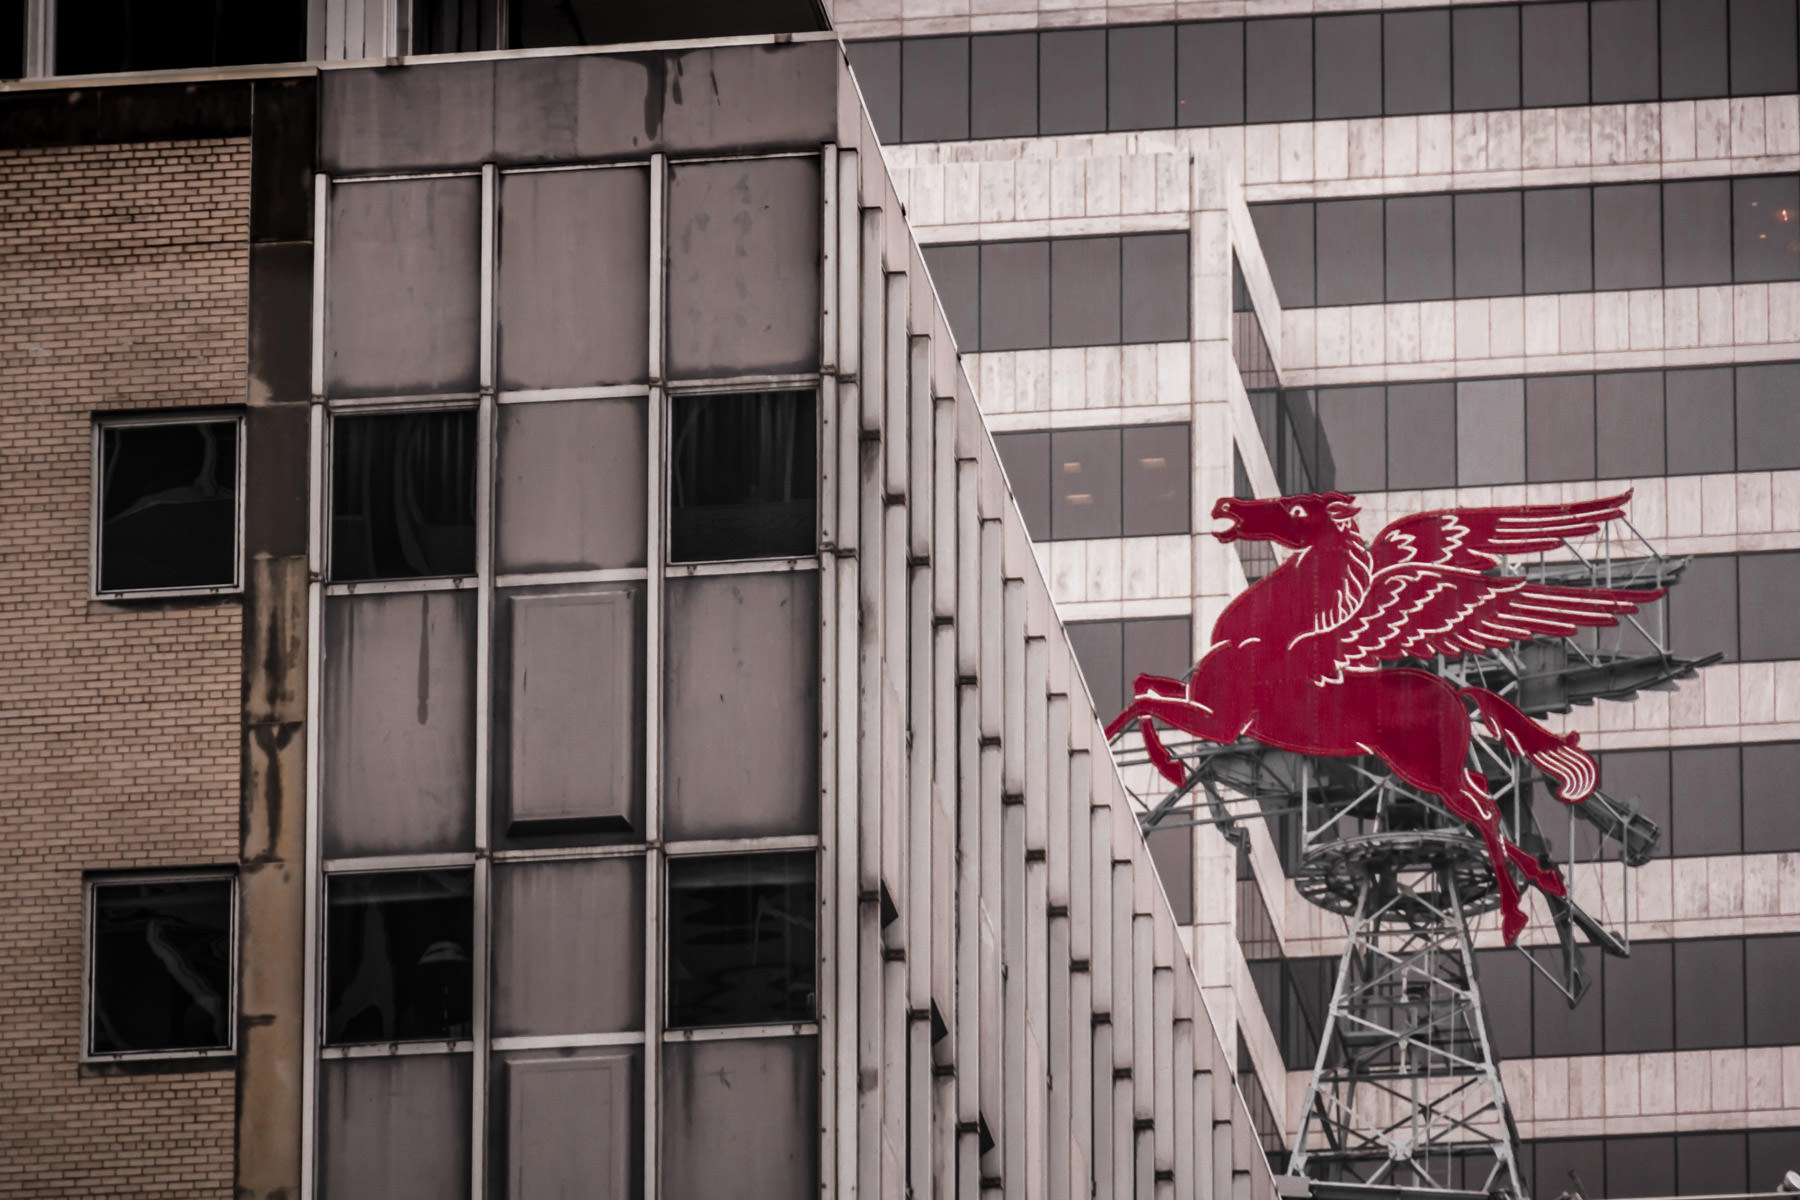 This neon Pegasus sign, atop Dallas' Magnolia Hotel, was originally installed when the building was the headquarters of Magnolia Petroleum (later Mobil Oil).  It was reconstructed in 2000 and has become a symbol of the city.